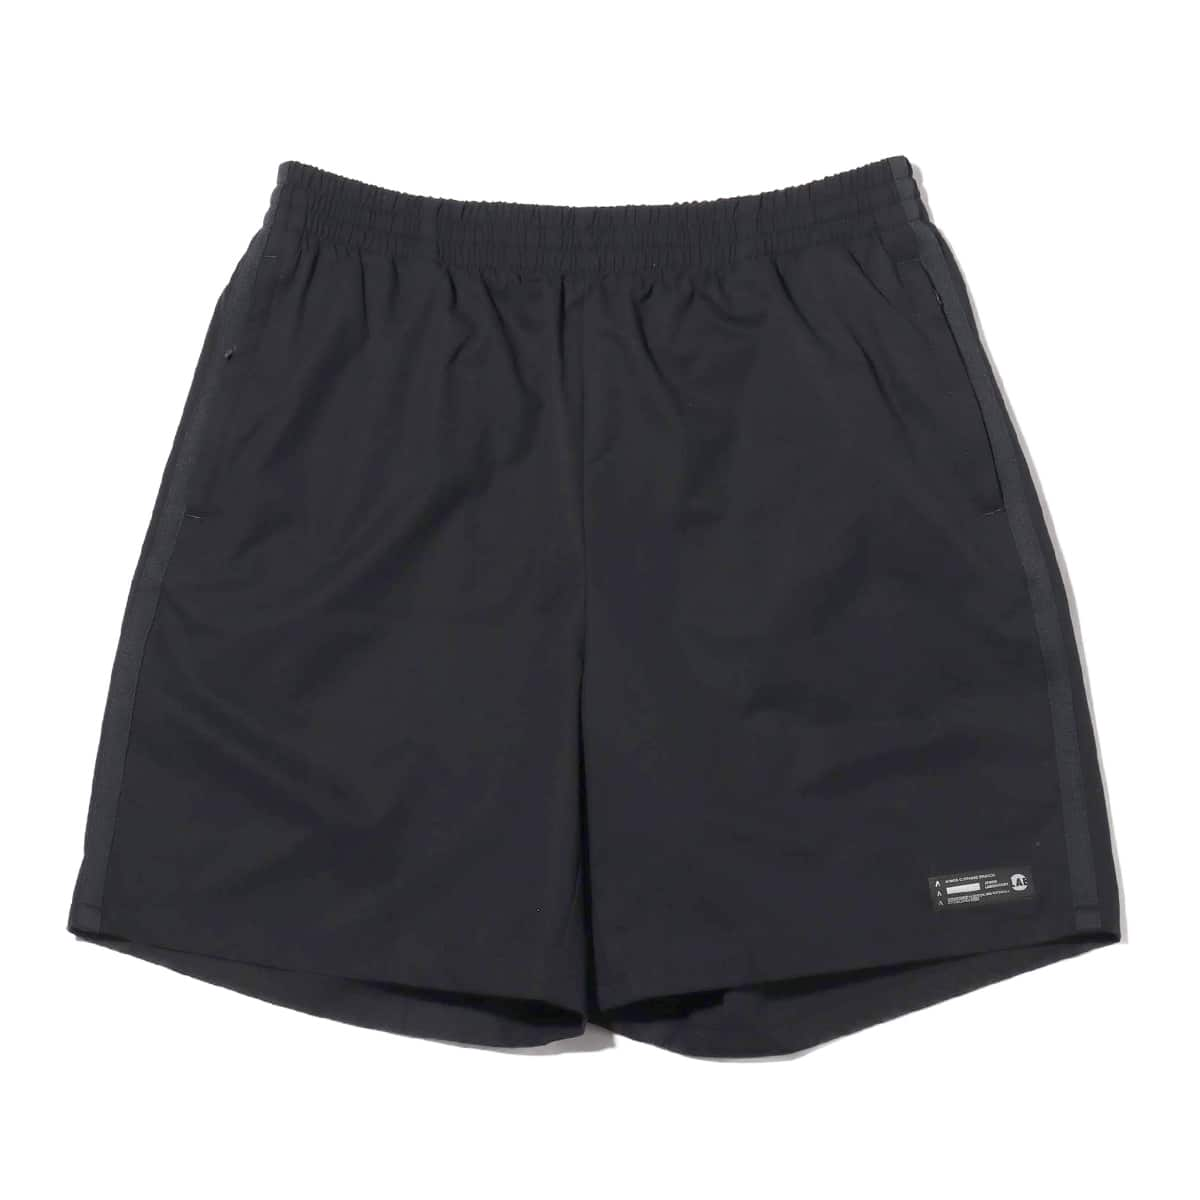 DESCENTE ddd X ATMOS LAB TRACK SHORTS BLACK 19SP-I_photo_large